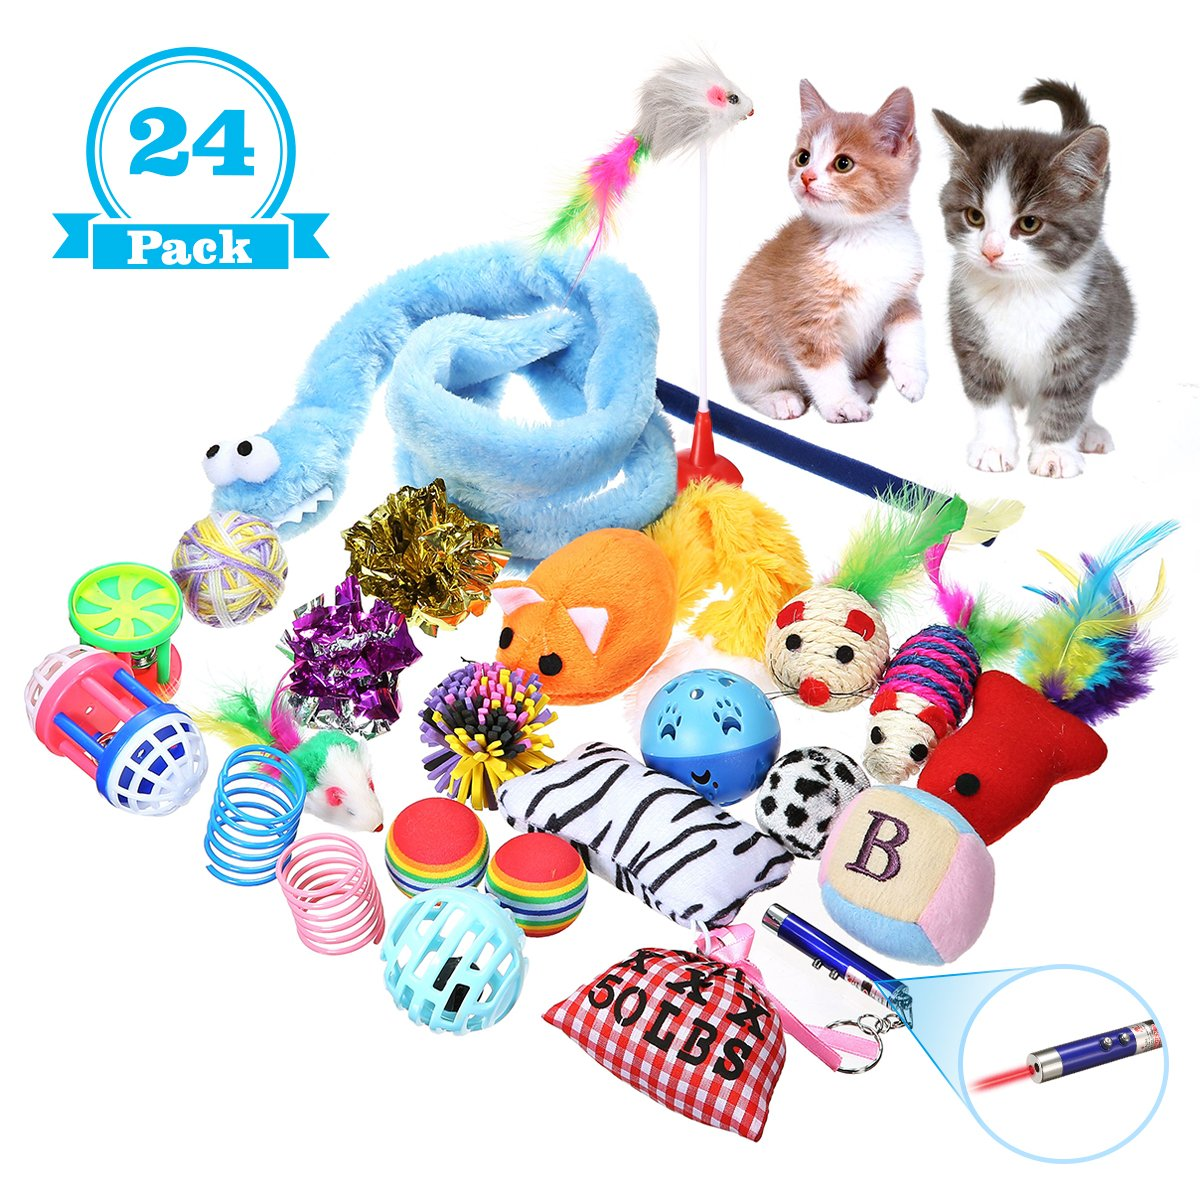 24 Packs FOCUSPET Cat Toys Variety Pack, Cat Toys for Exercise, Interactive LED Light,Cat Teaser Wand, Interactive Feather Toy Fluffy Mouse, Mylar Crinkle Balls Catnip Pillow for Kitten Kitty (24PACK)